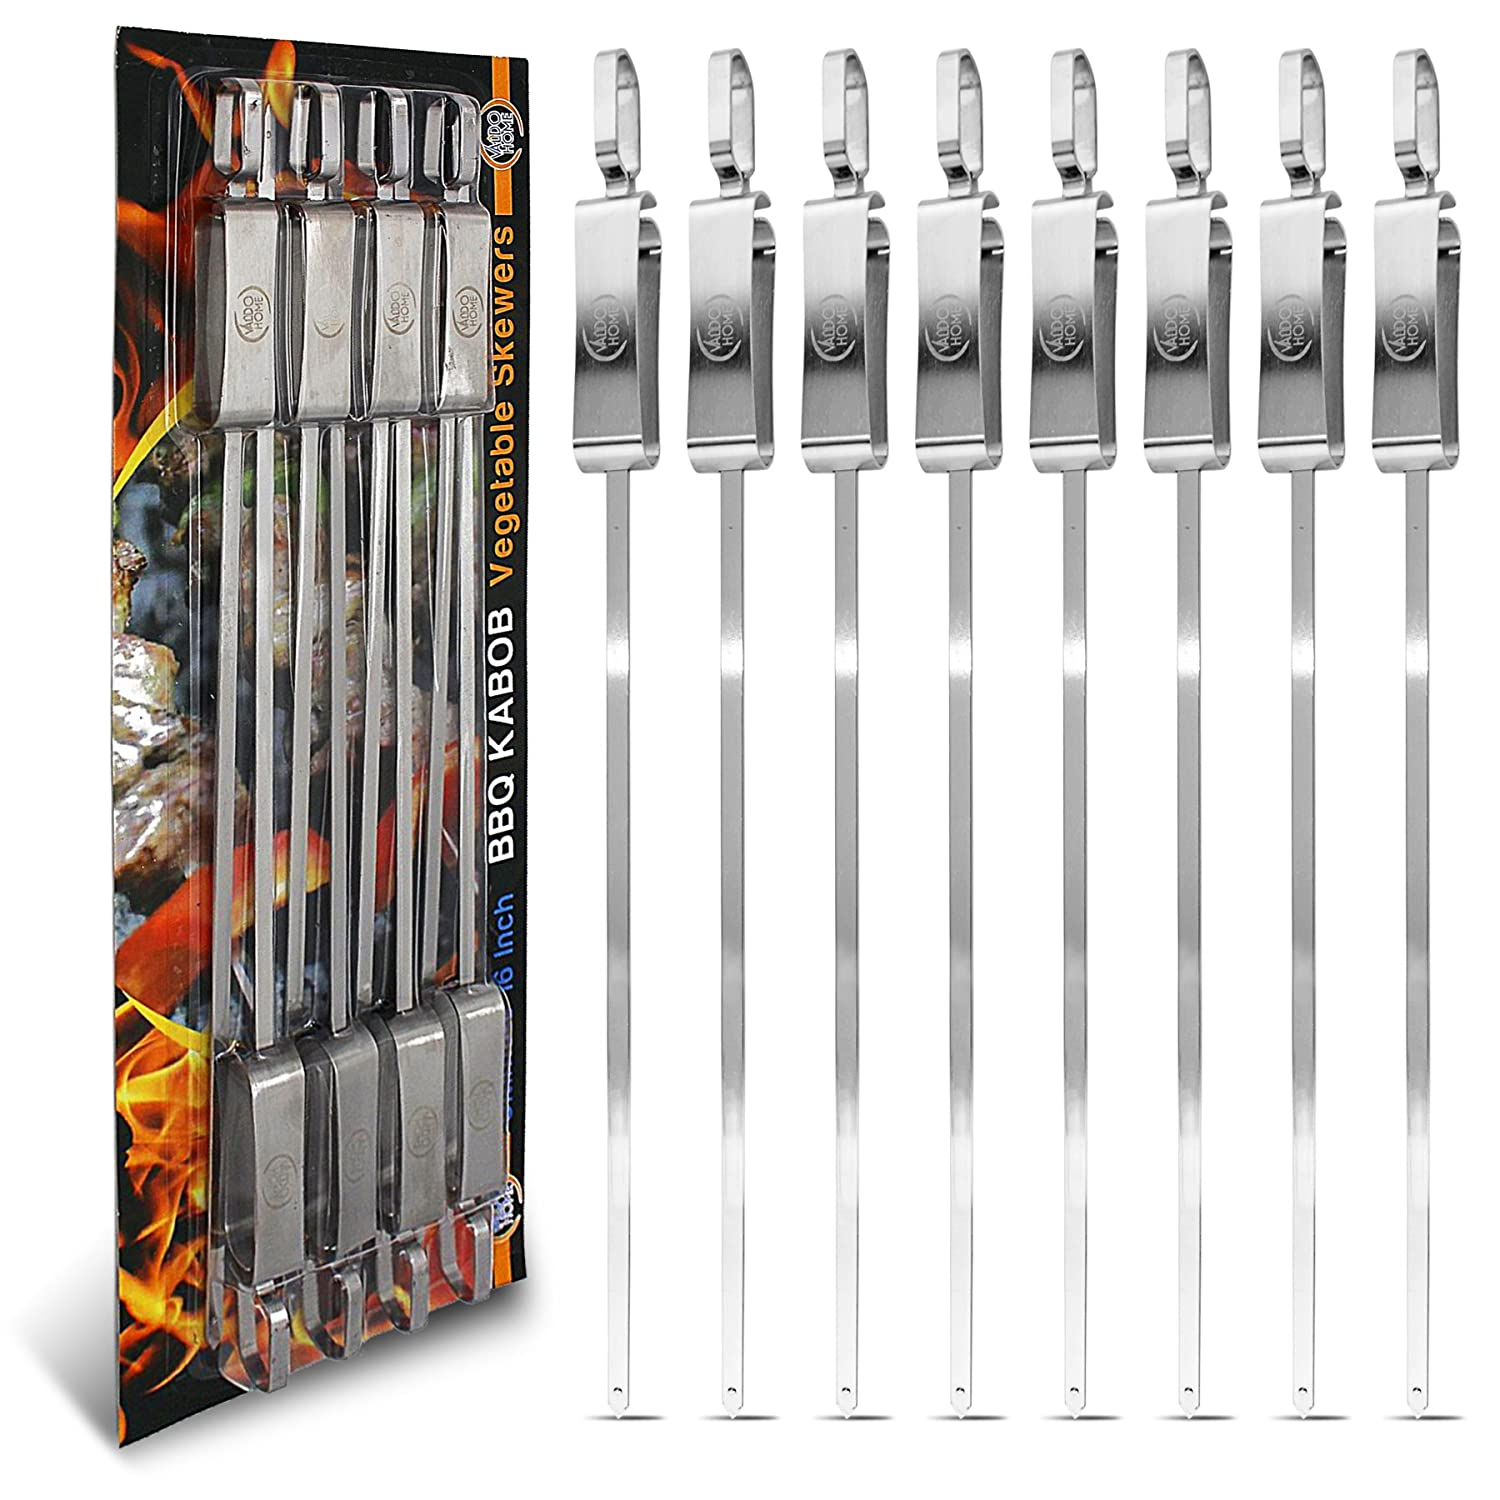 BBQ Stainless Steel Kabob Skewers for Barbecue Stick Grilling 16 Inch Long With Metal Sliding Handle 8